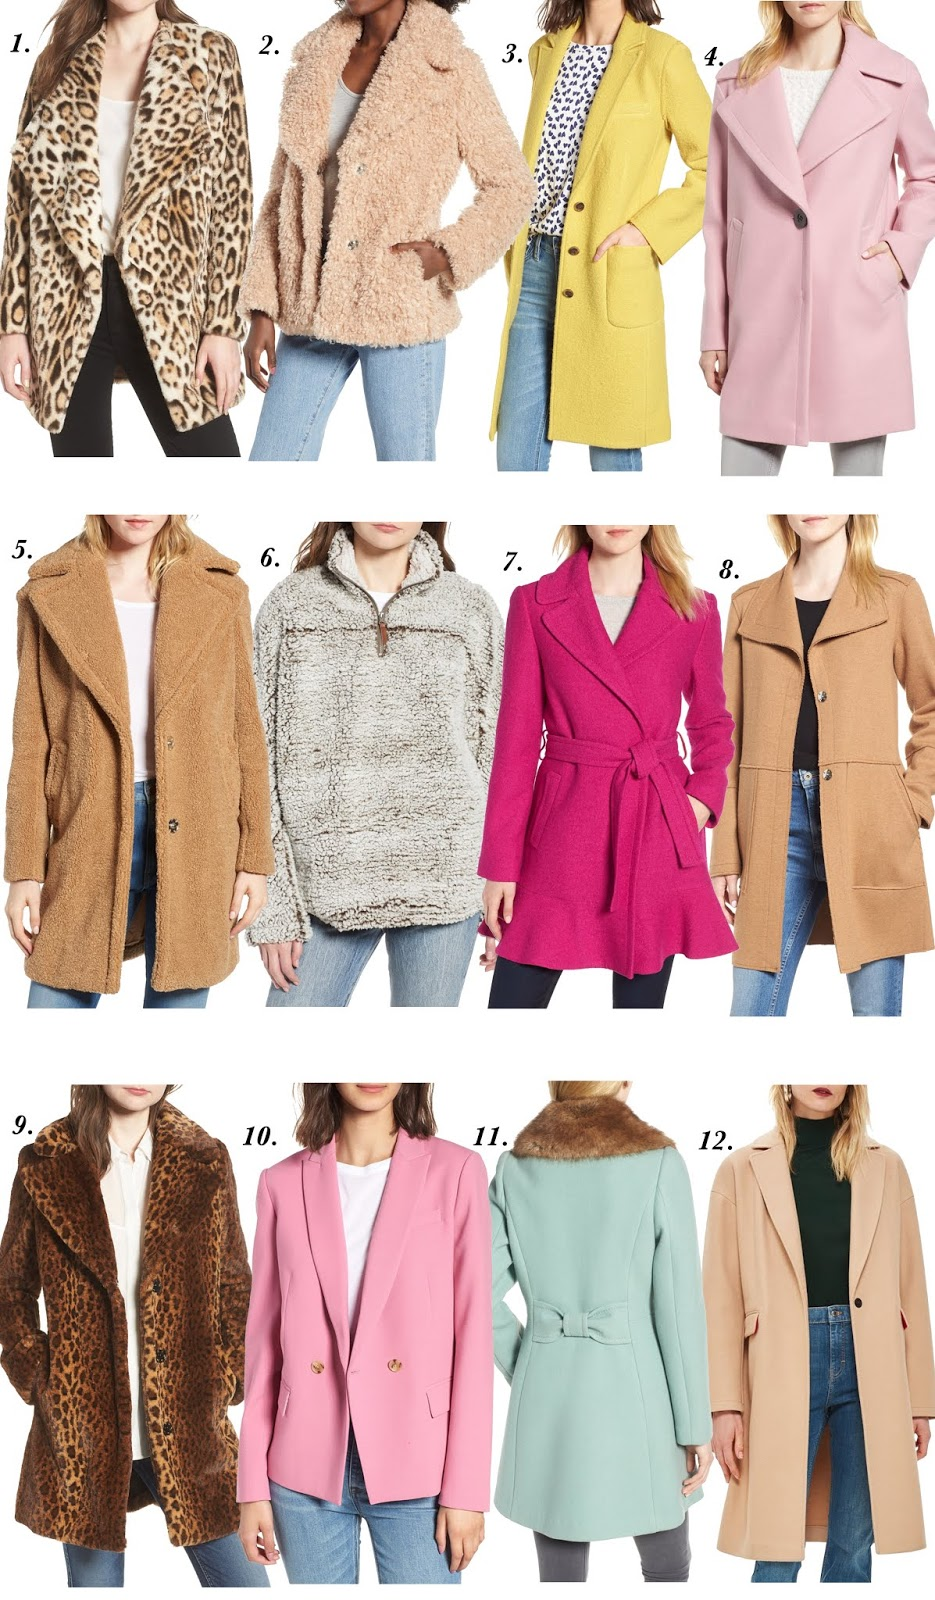 2018 Nordstrom Anniversary Sale: Coats and Jackets - Something Delightful Blog